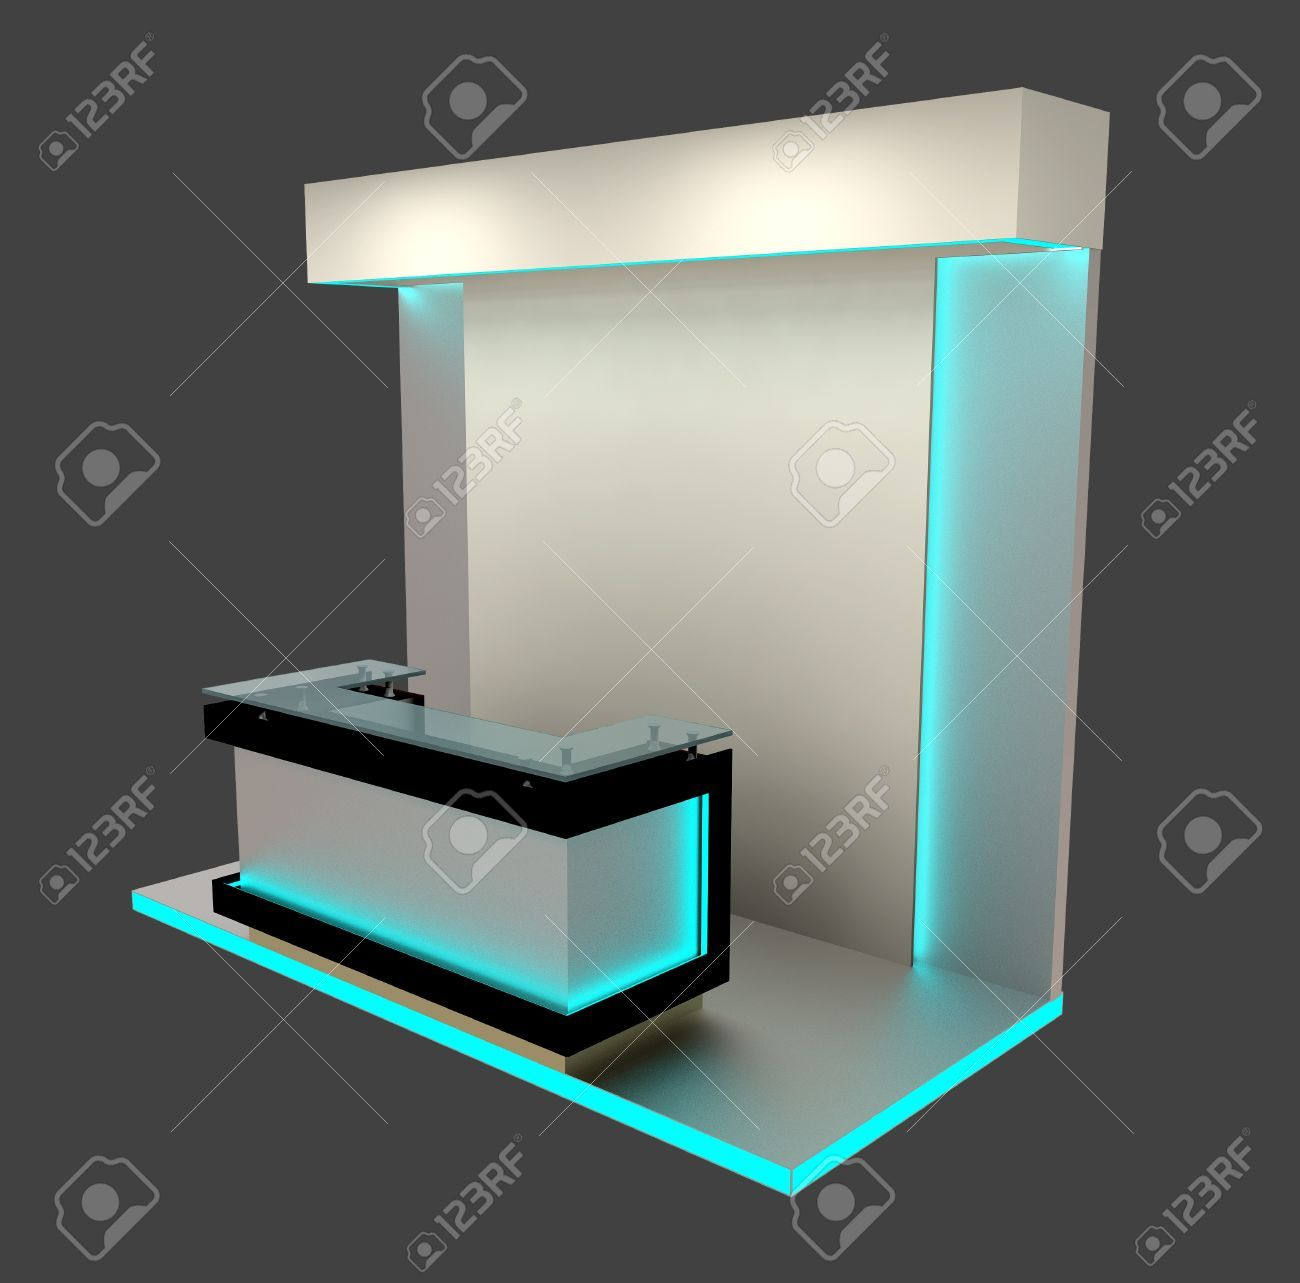 Exhibition Booth Counter : Abstract exhibition booth kiosk reception counter